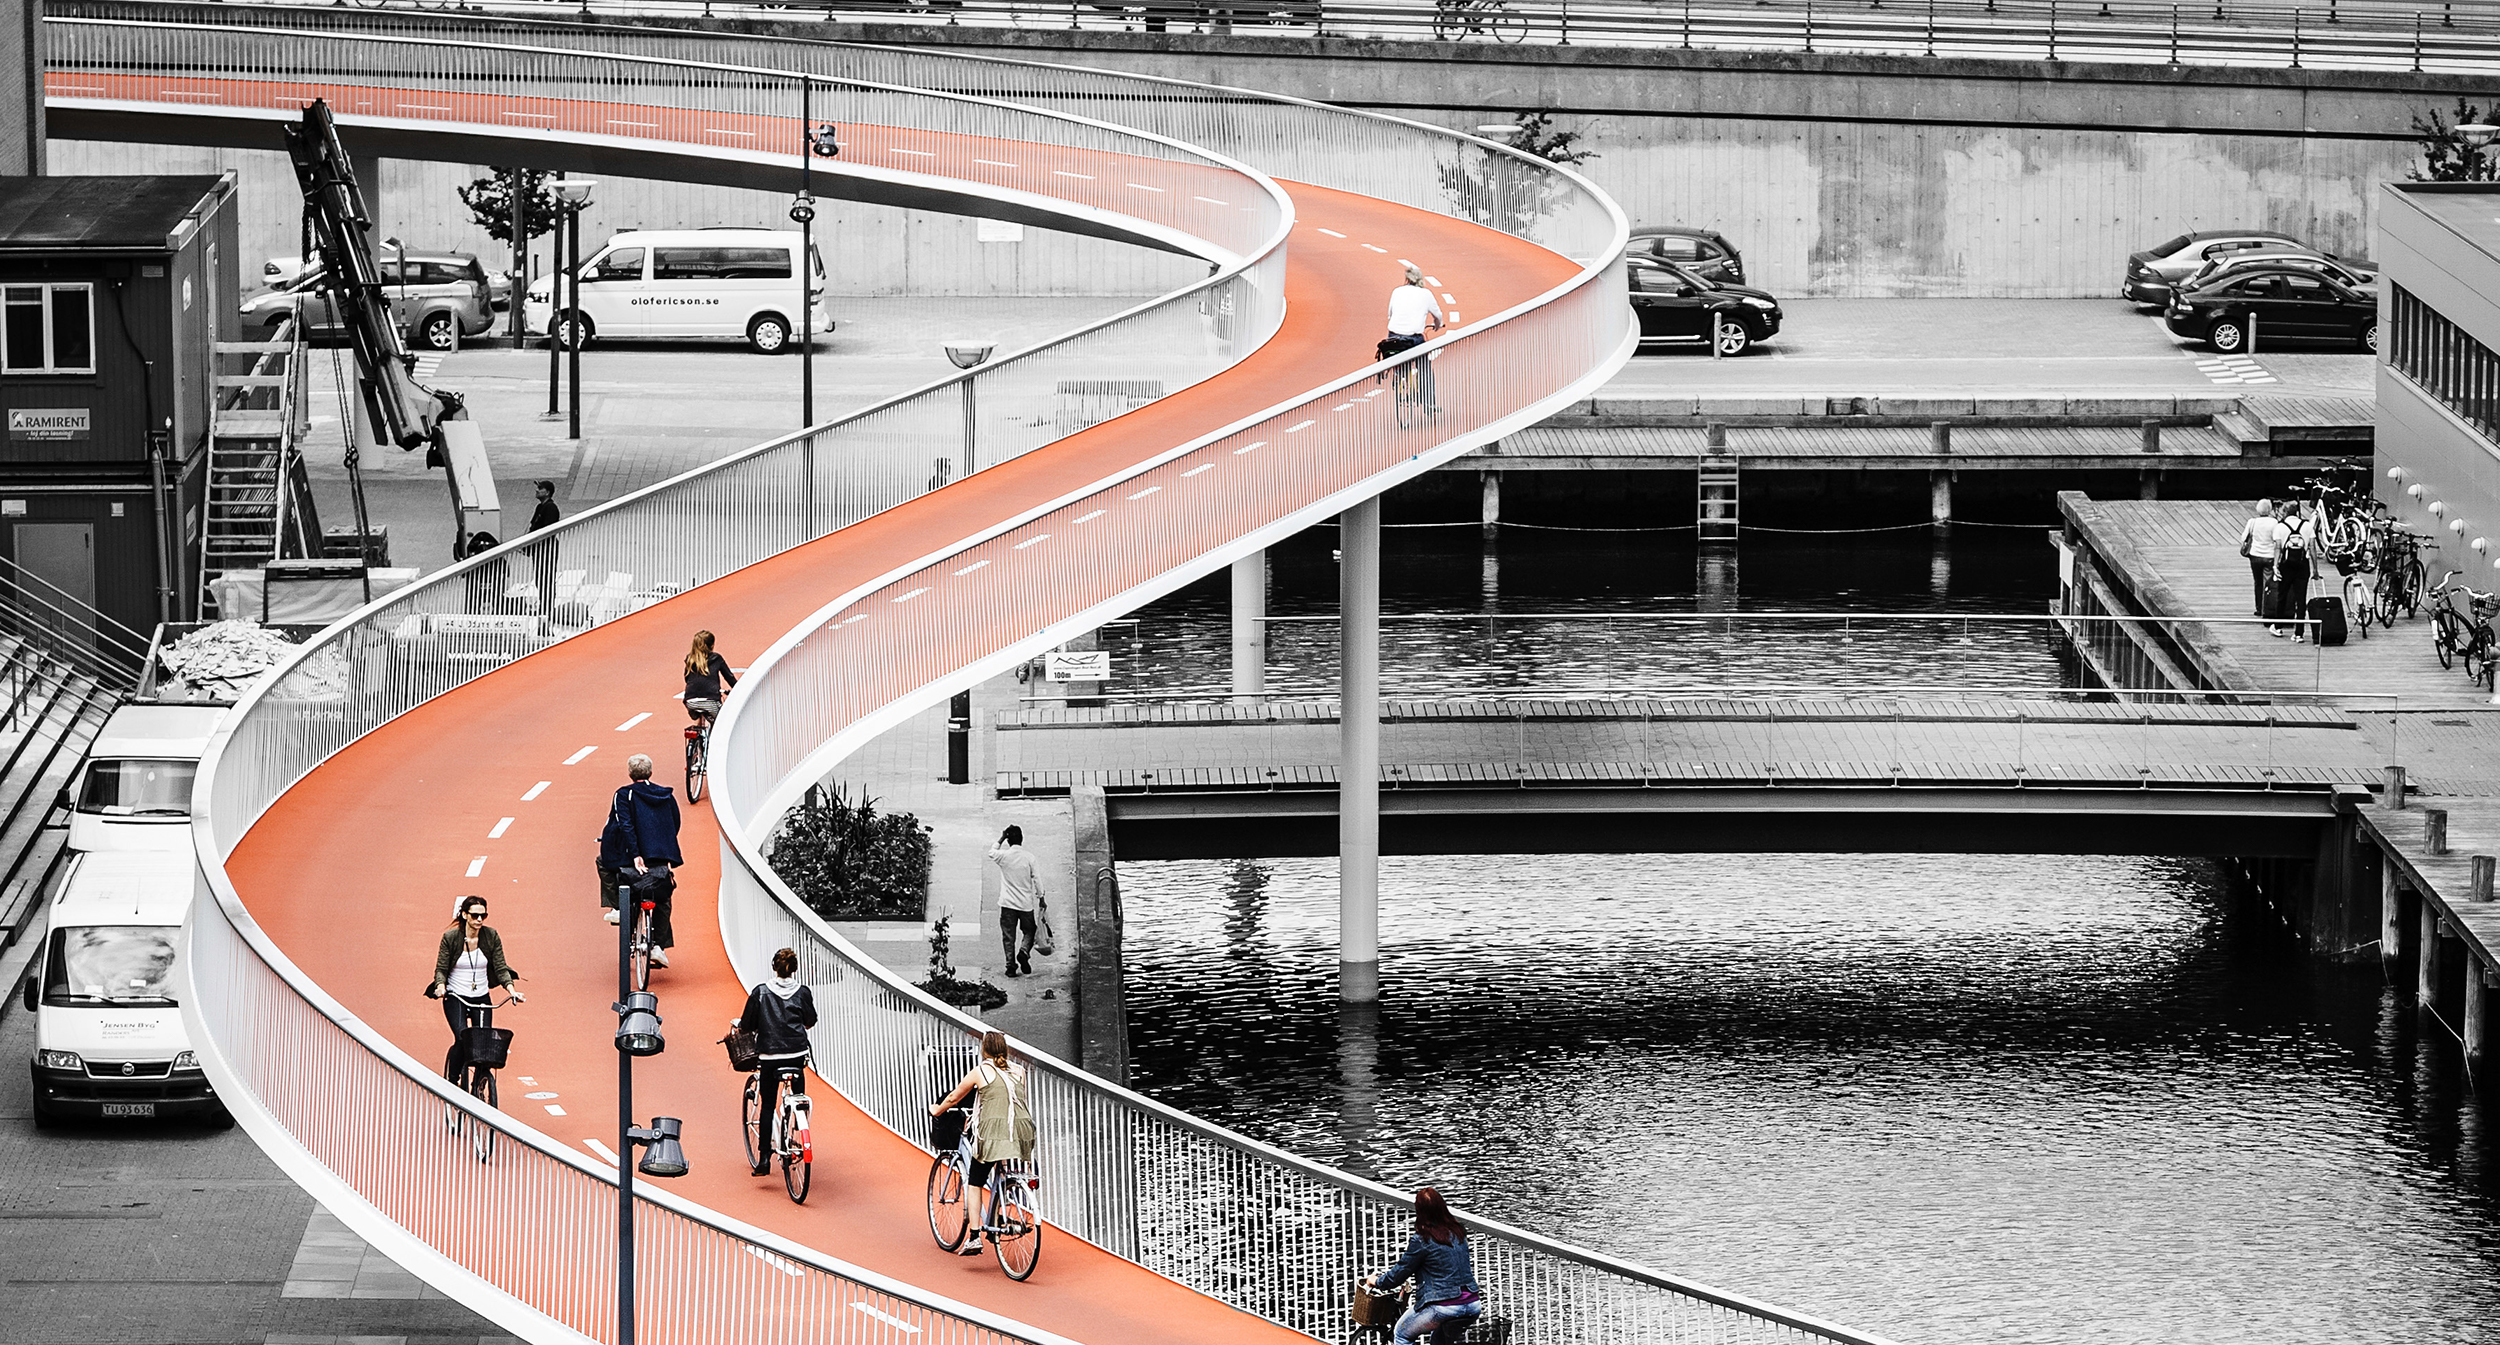 Icon Award, Danish Design Award 2018    The Bicycle Snake  received the Icon Award, which is given to an outstanding concept that has become an icon of Danish design and an icon internationally.